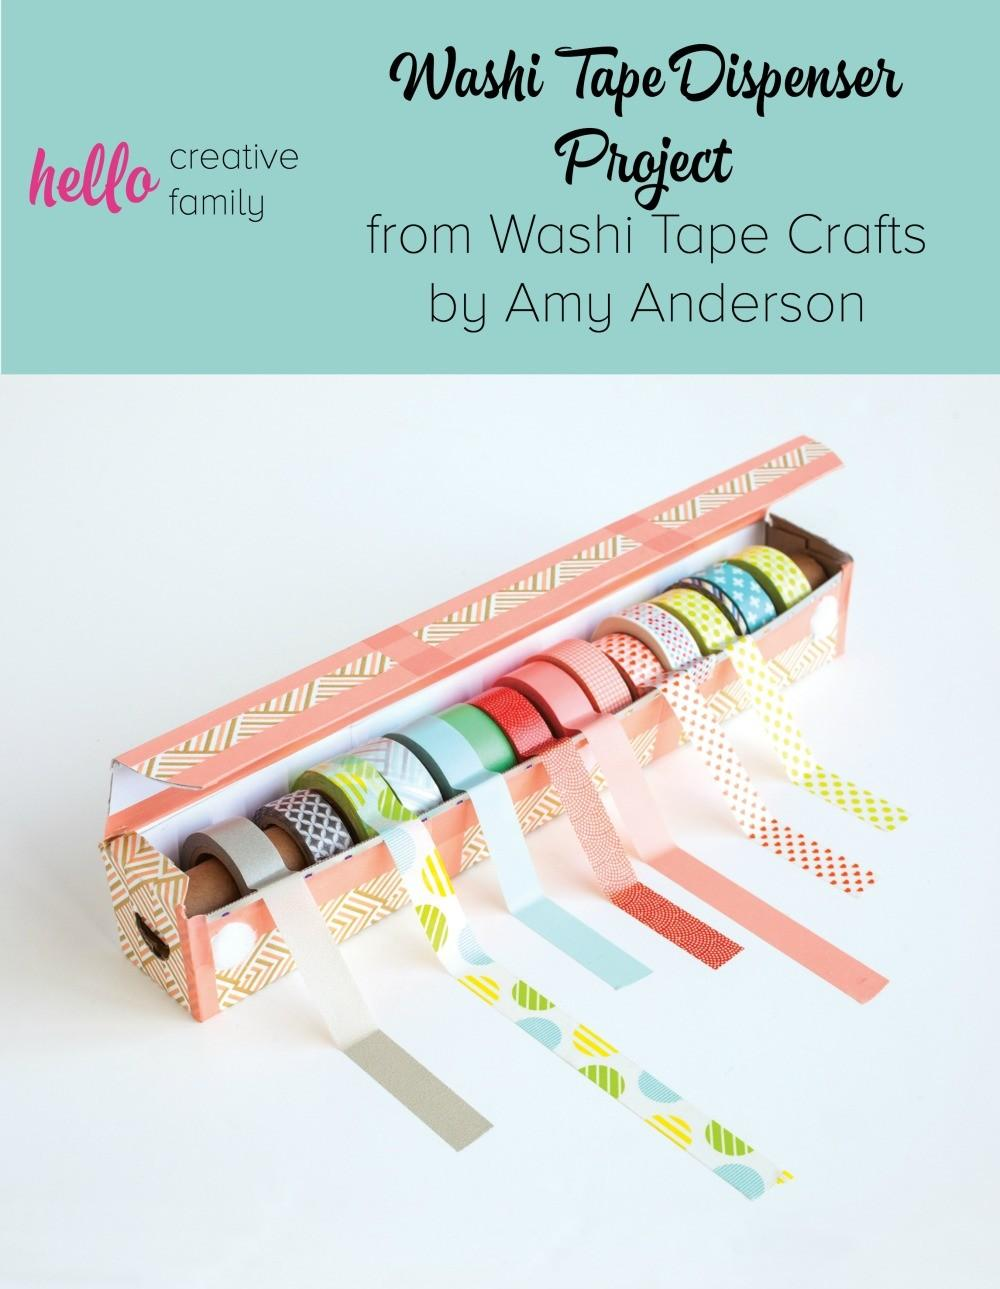 Easy Diy Washi Tape Dispenser Project